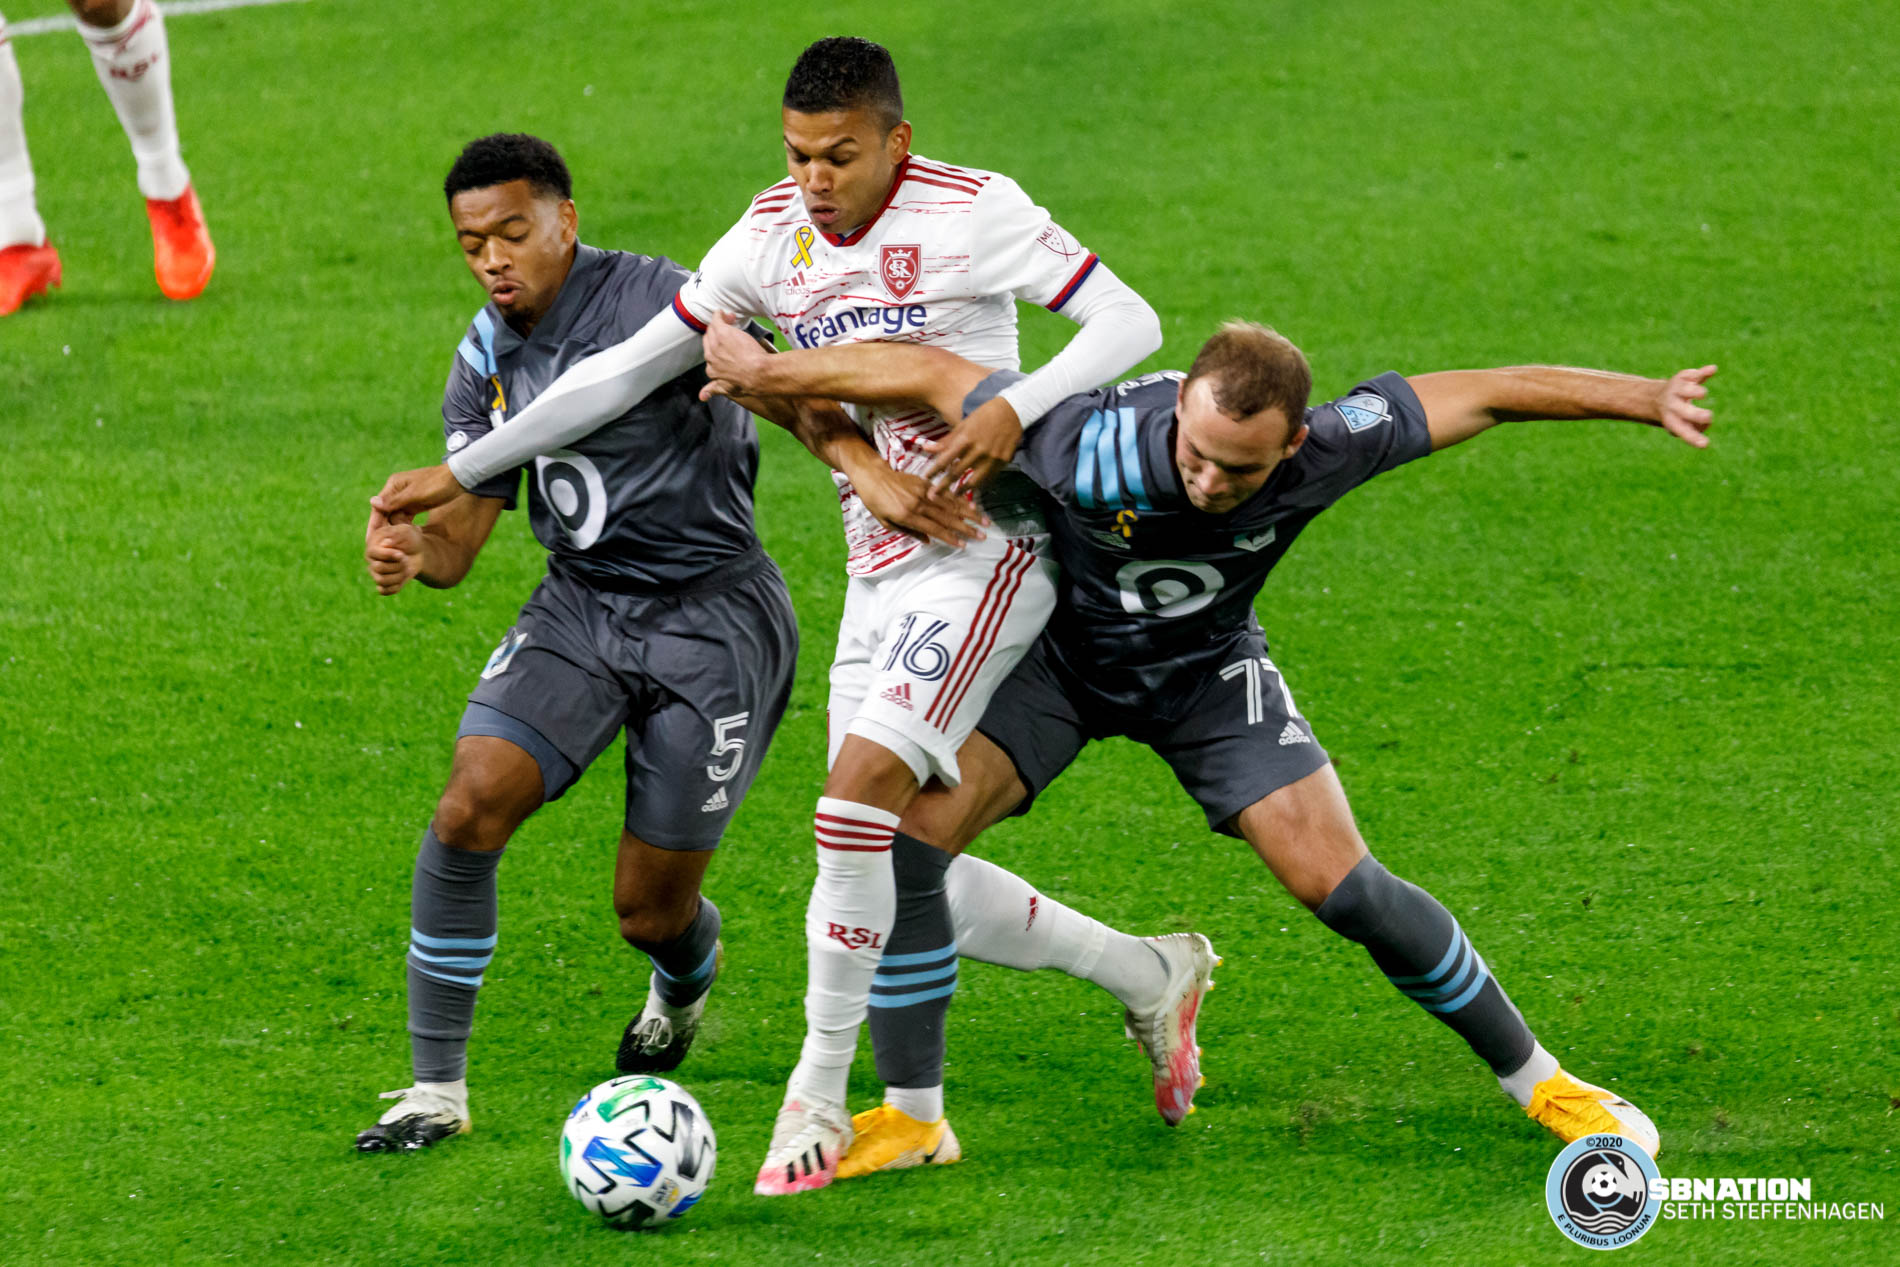 September 27, 2020 - Saint Paul, Minnesota, United States - Minnesota United players Jacori Hayes (5) and Chase Gasper (77) fight Real Salt Lake midfielder Maikel Chang (16) for the ball during the match at Allianz Field.   (Photo by Seth Steffenhagen/Steffenhagen Photography)